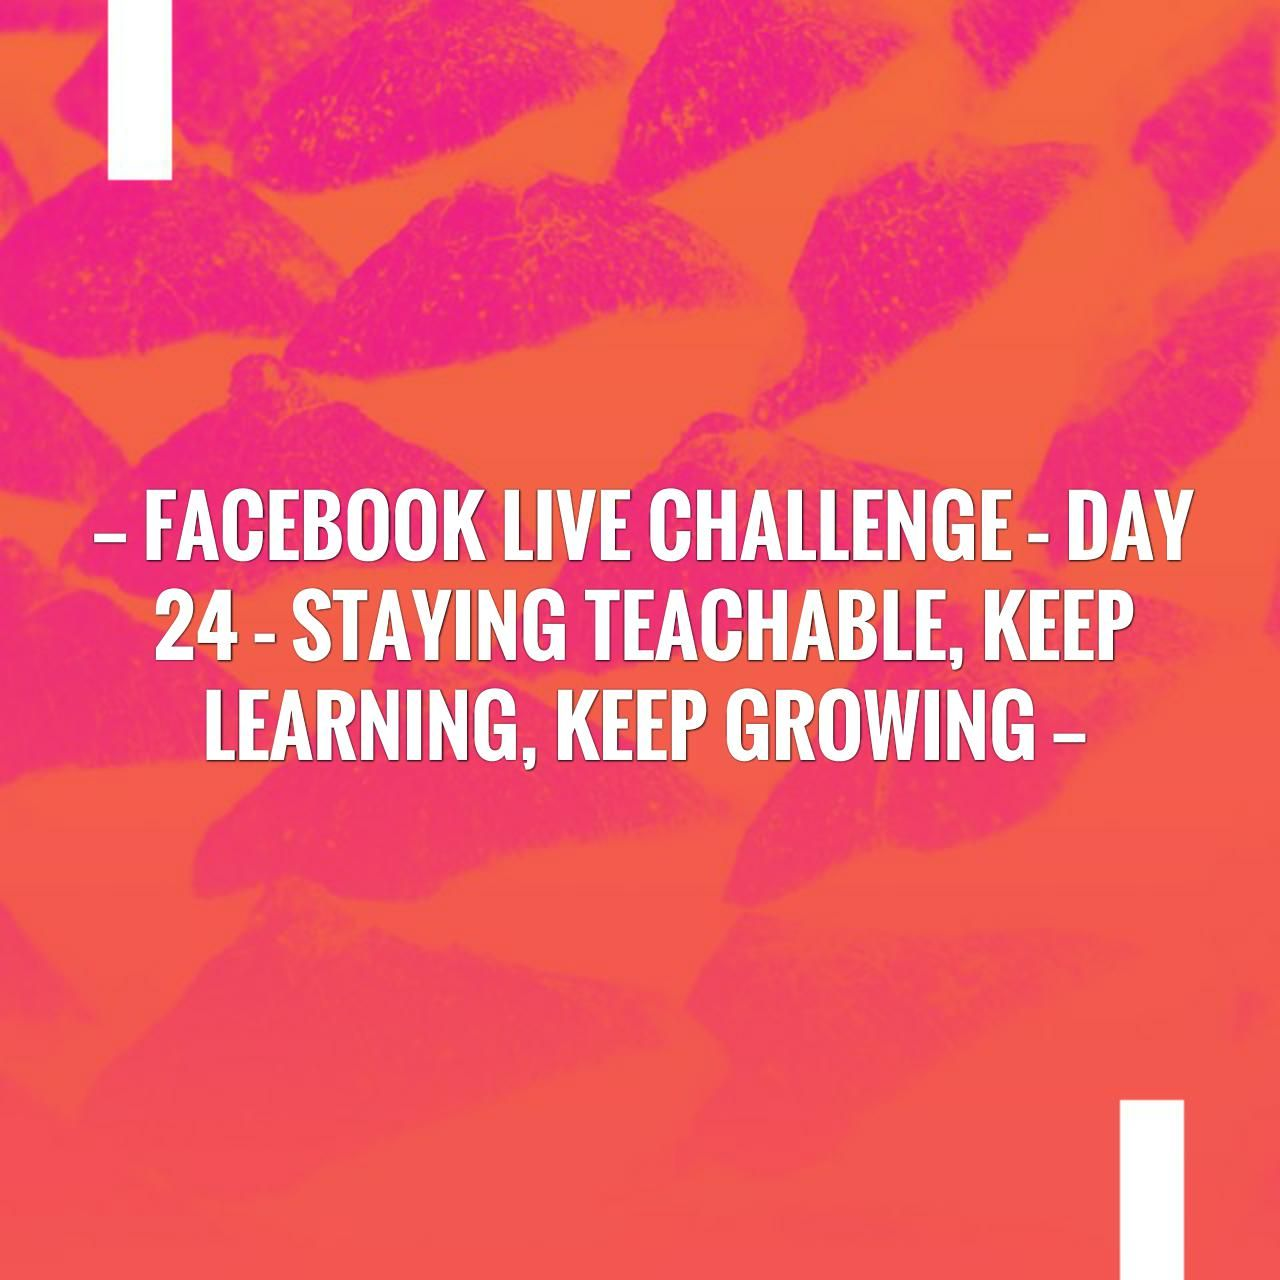 Facebook Live Challenge Day 24 Staying Teachable, Keep